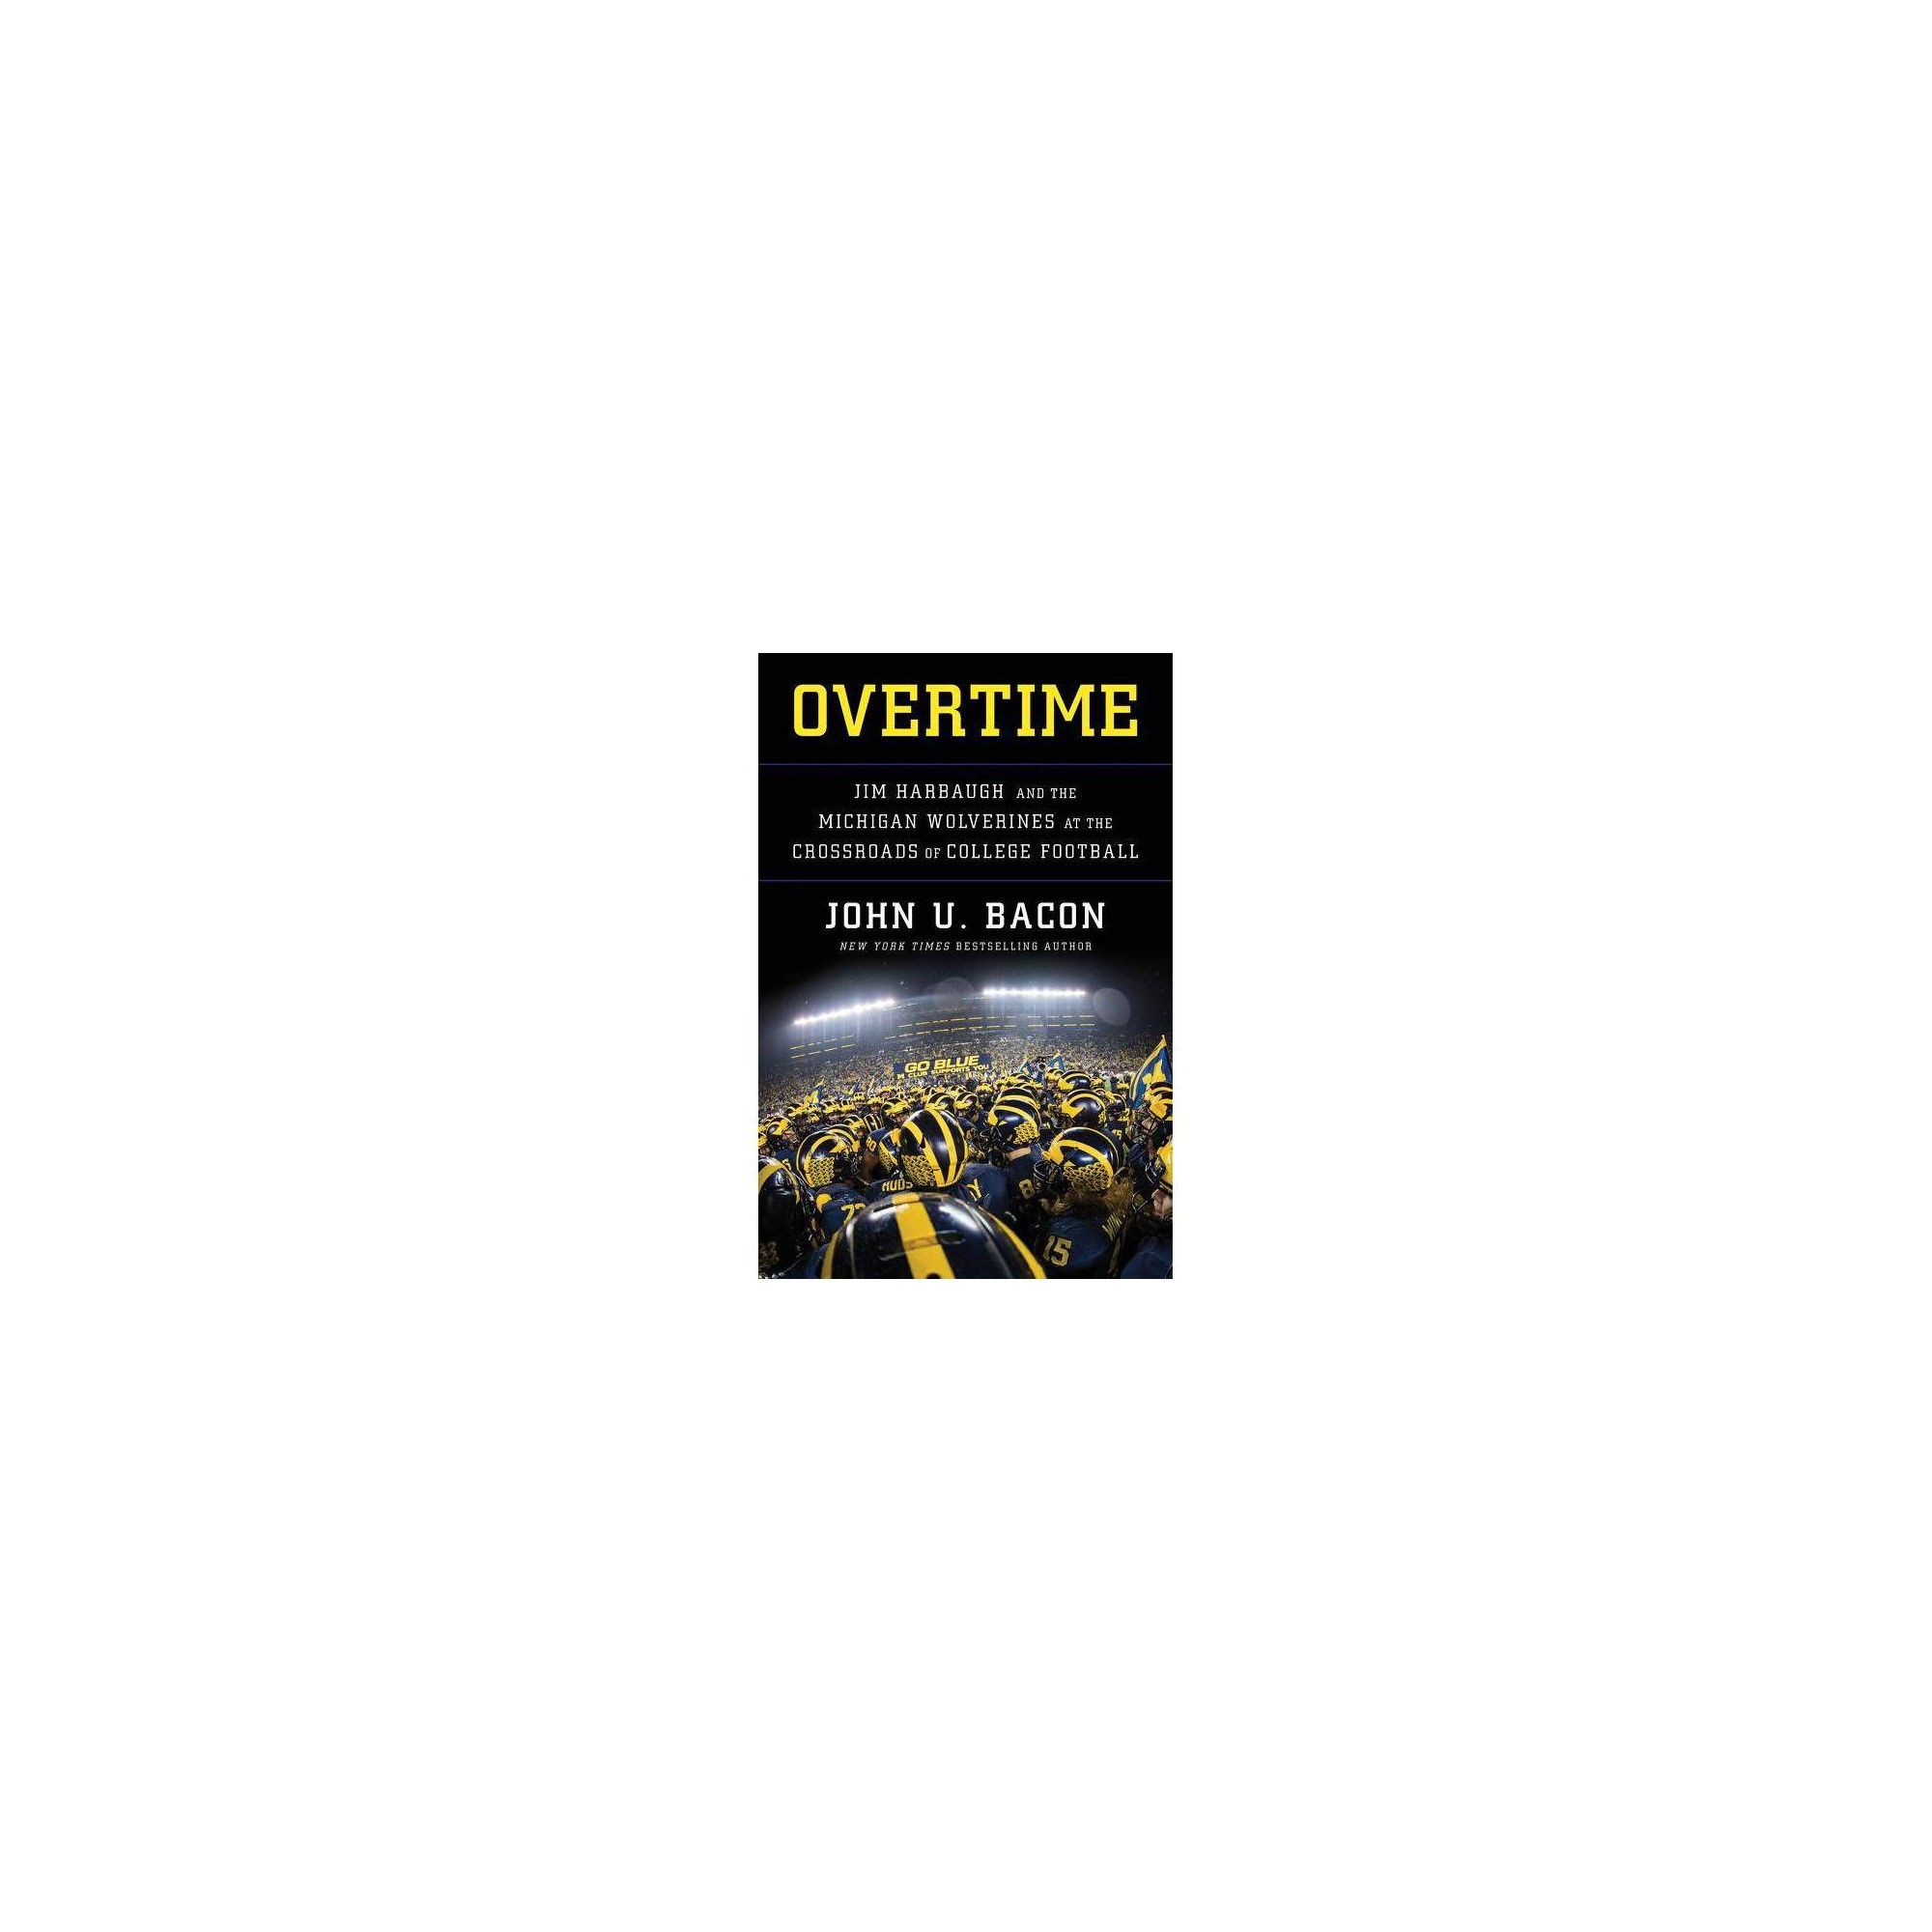 Books Overtime Jim Harbaugh and the Michigan Wolverines at